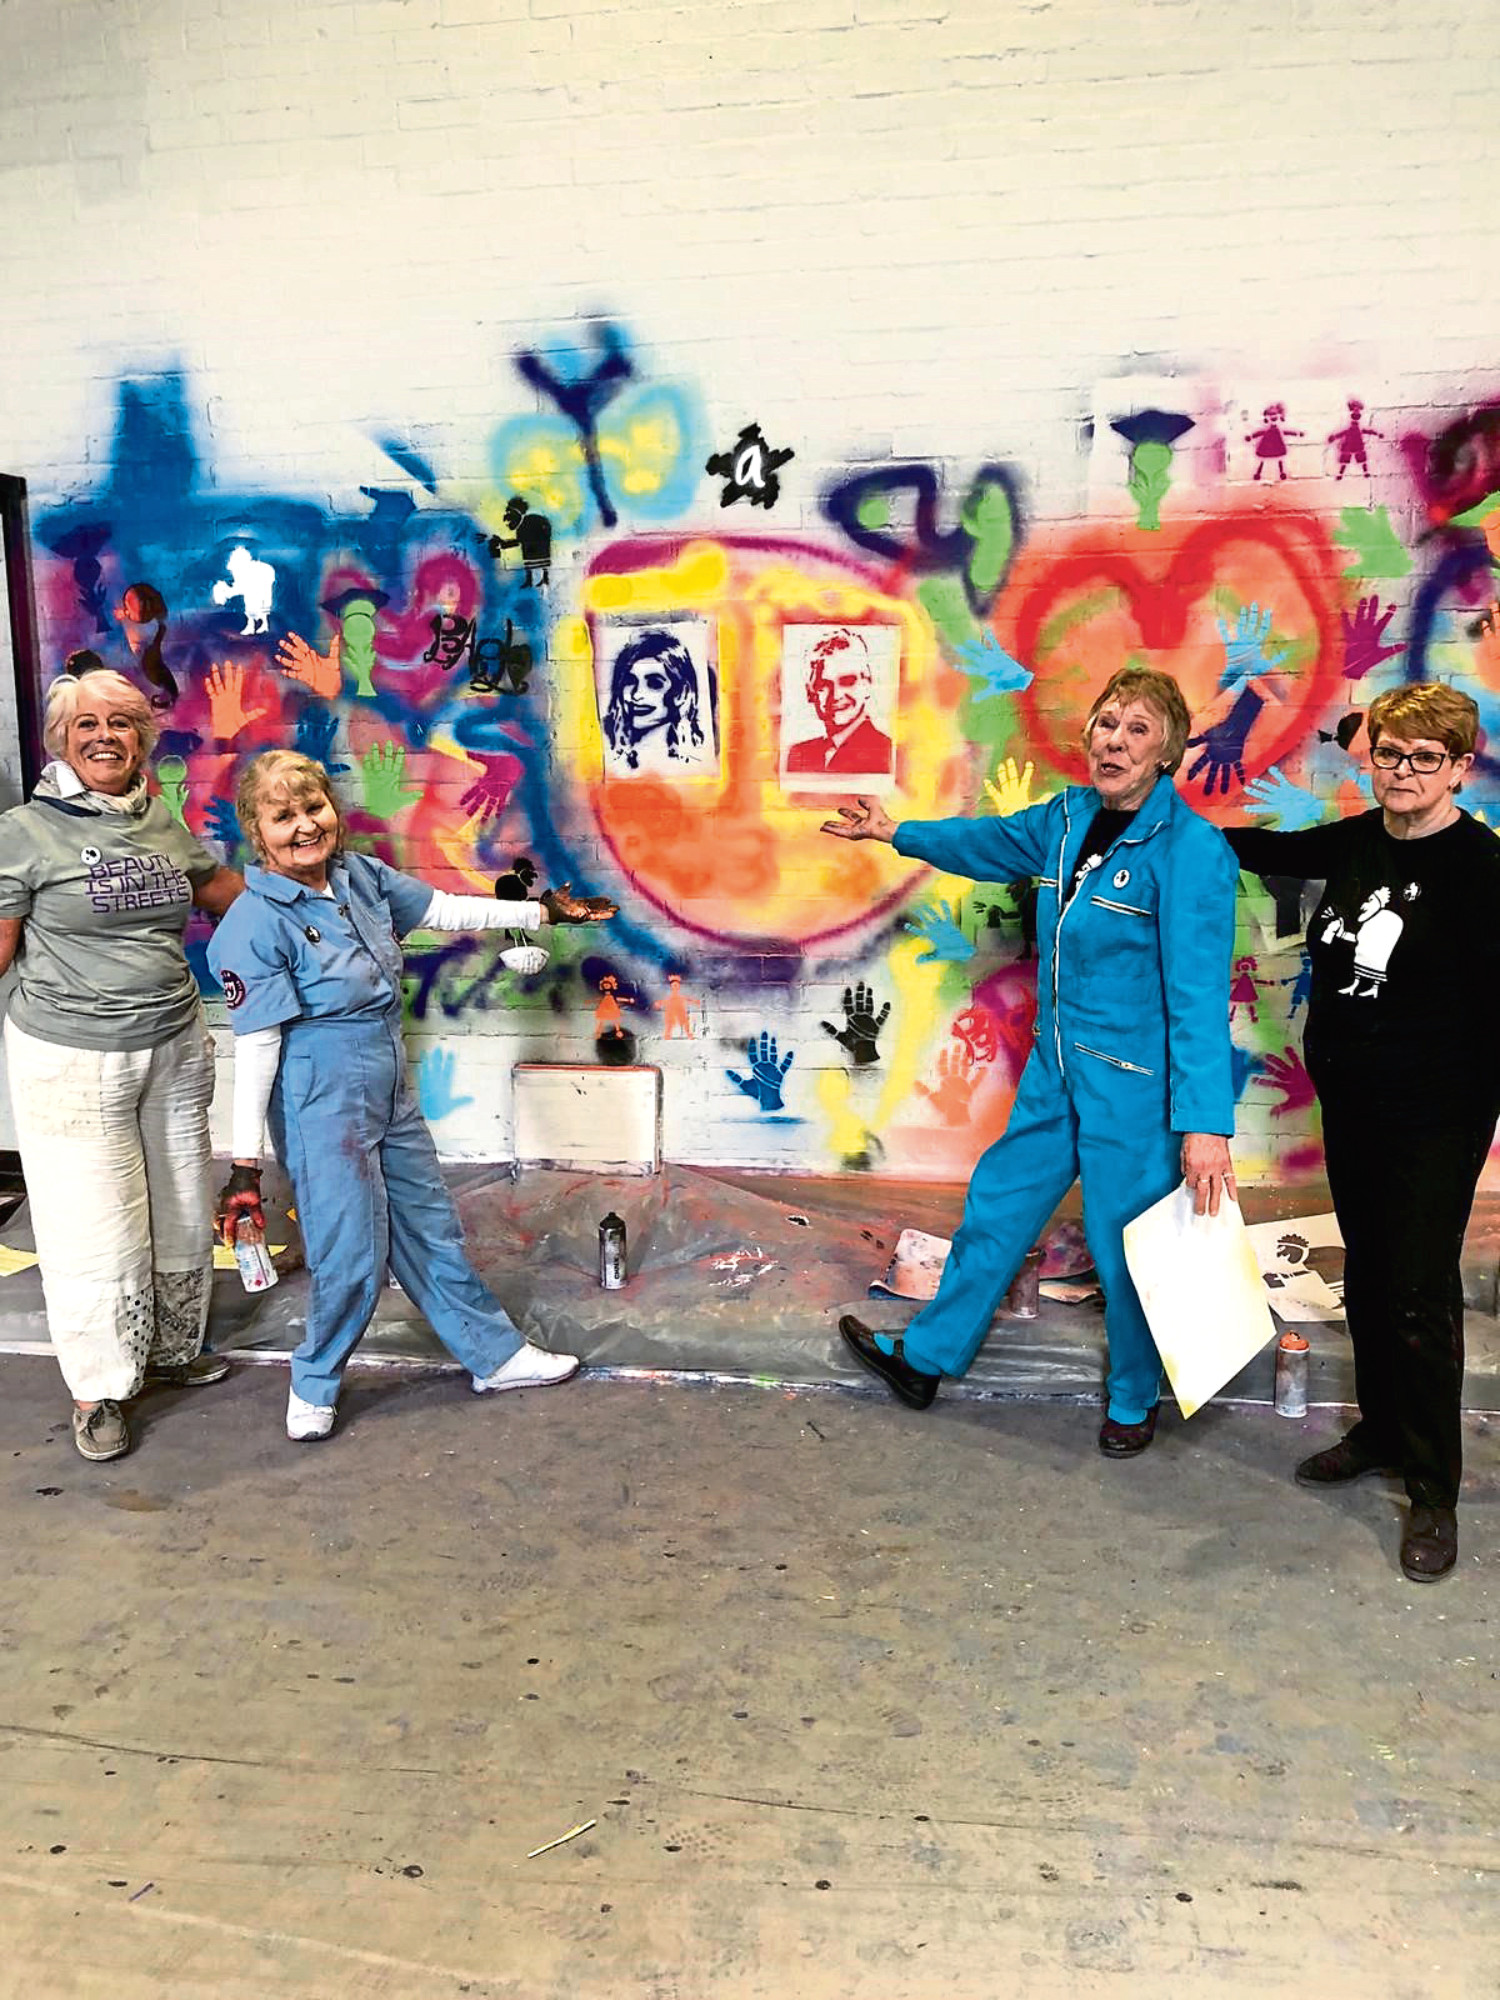 The Graffiti Grannies on This Morning